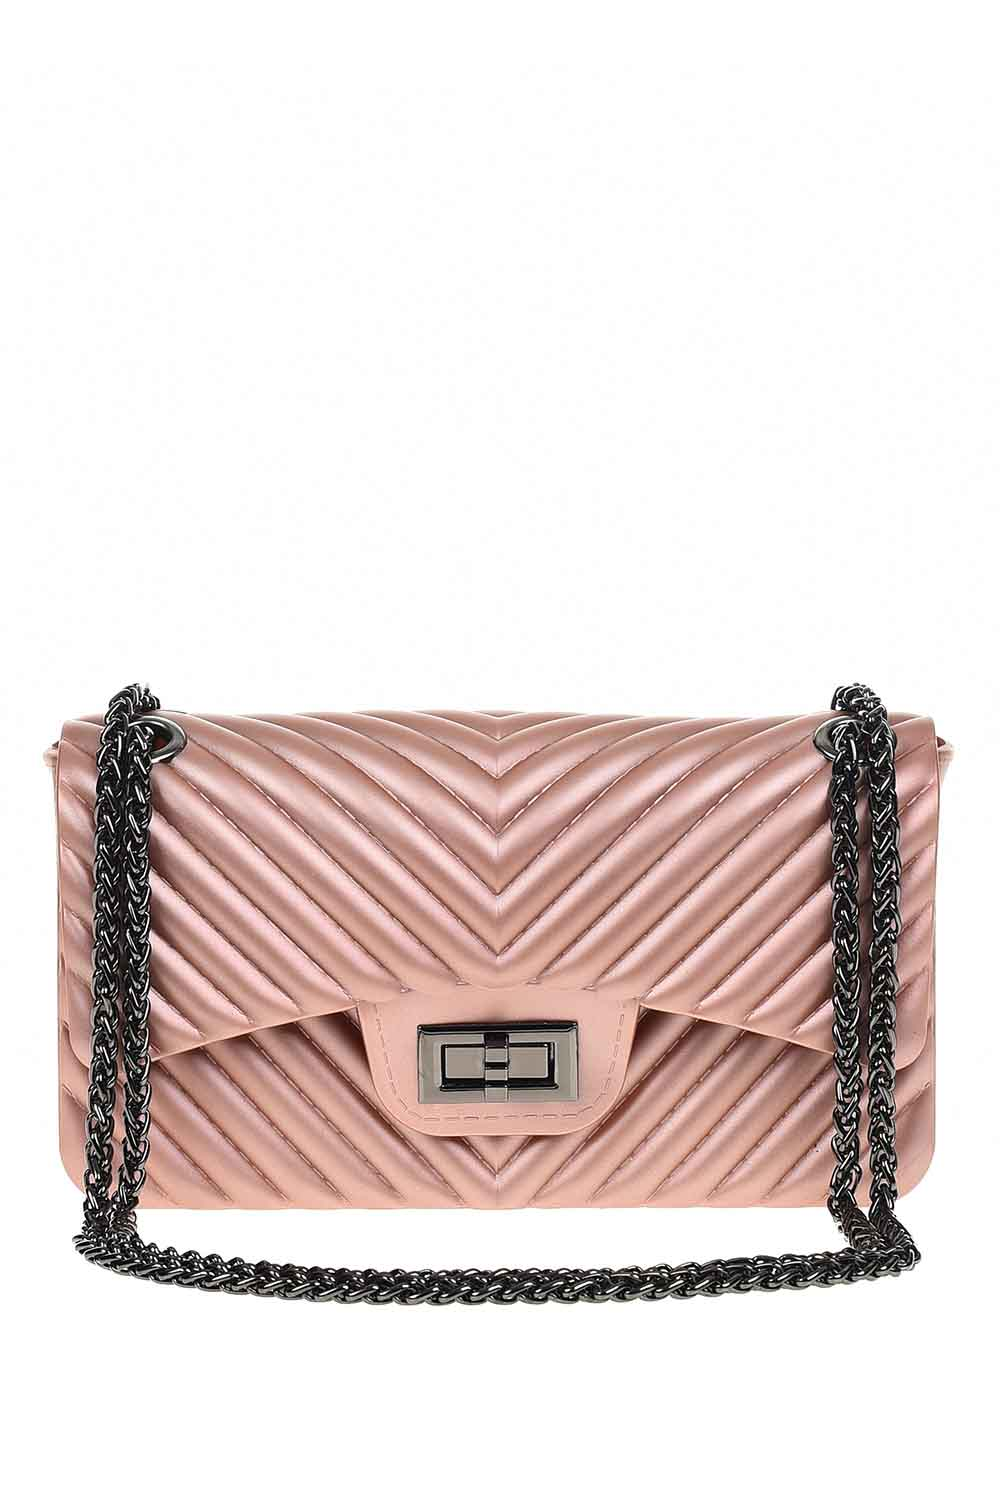 MIZALLE Patterned Hand Bag (Pink) (1)